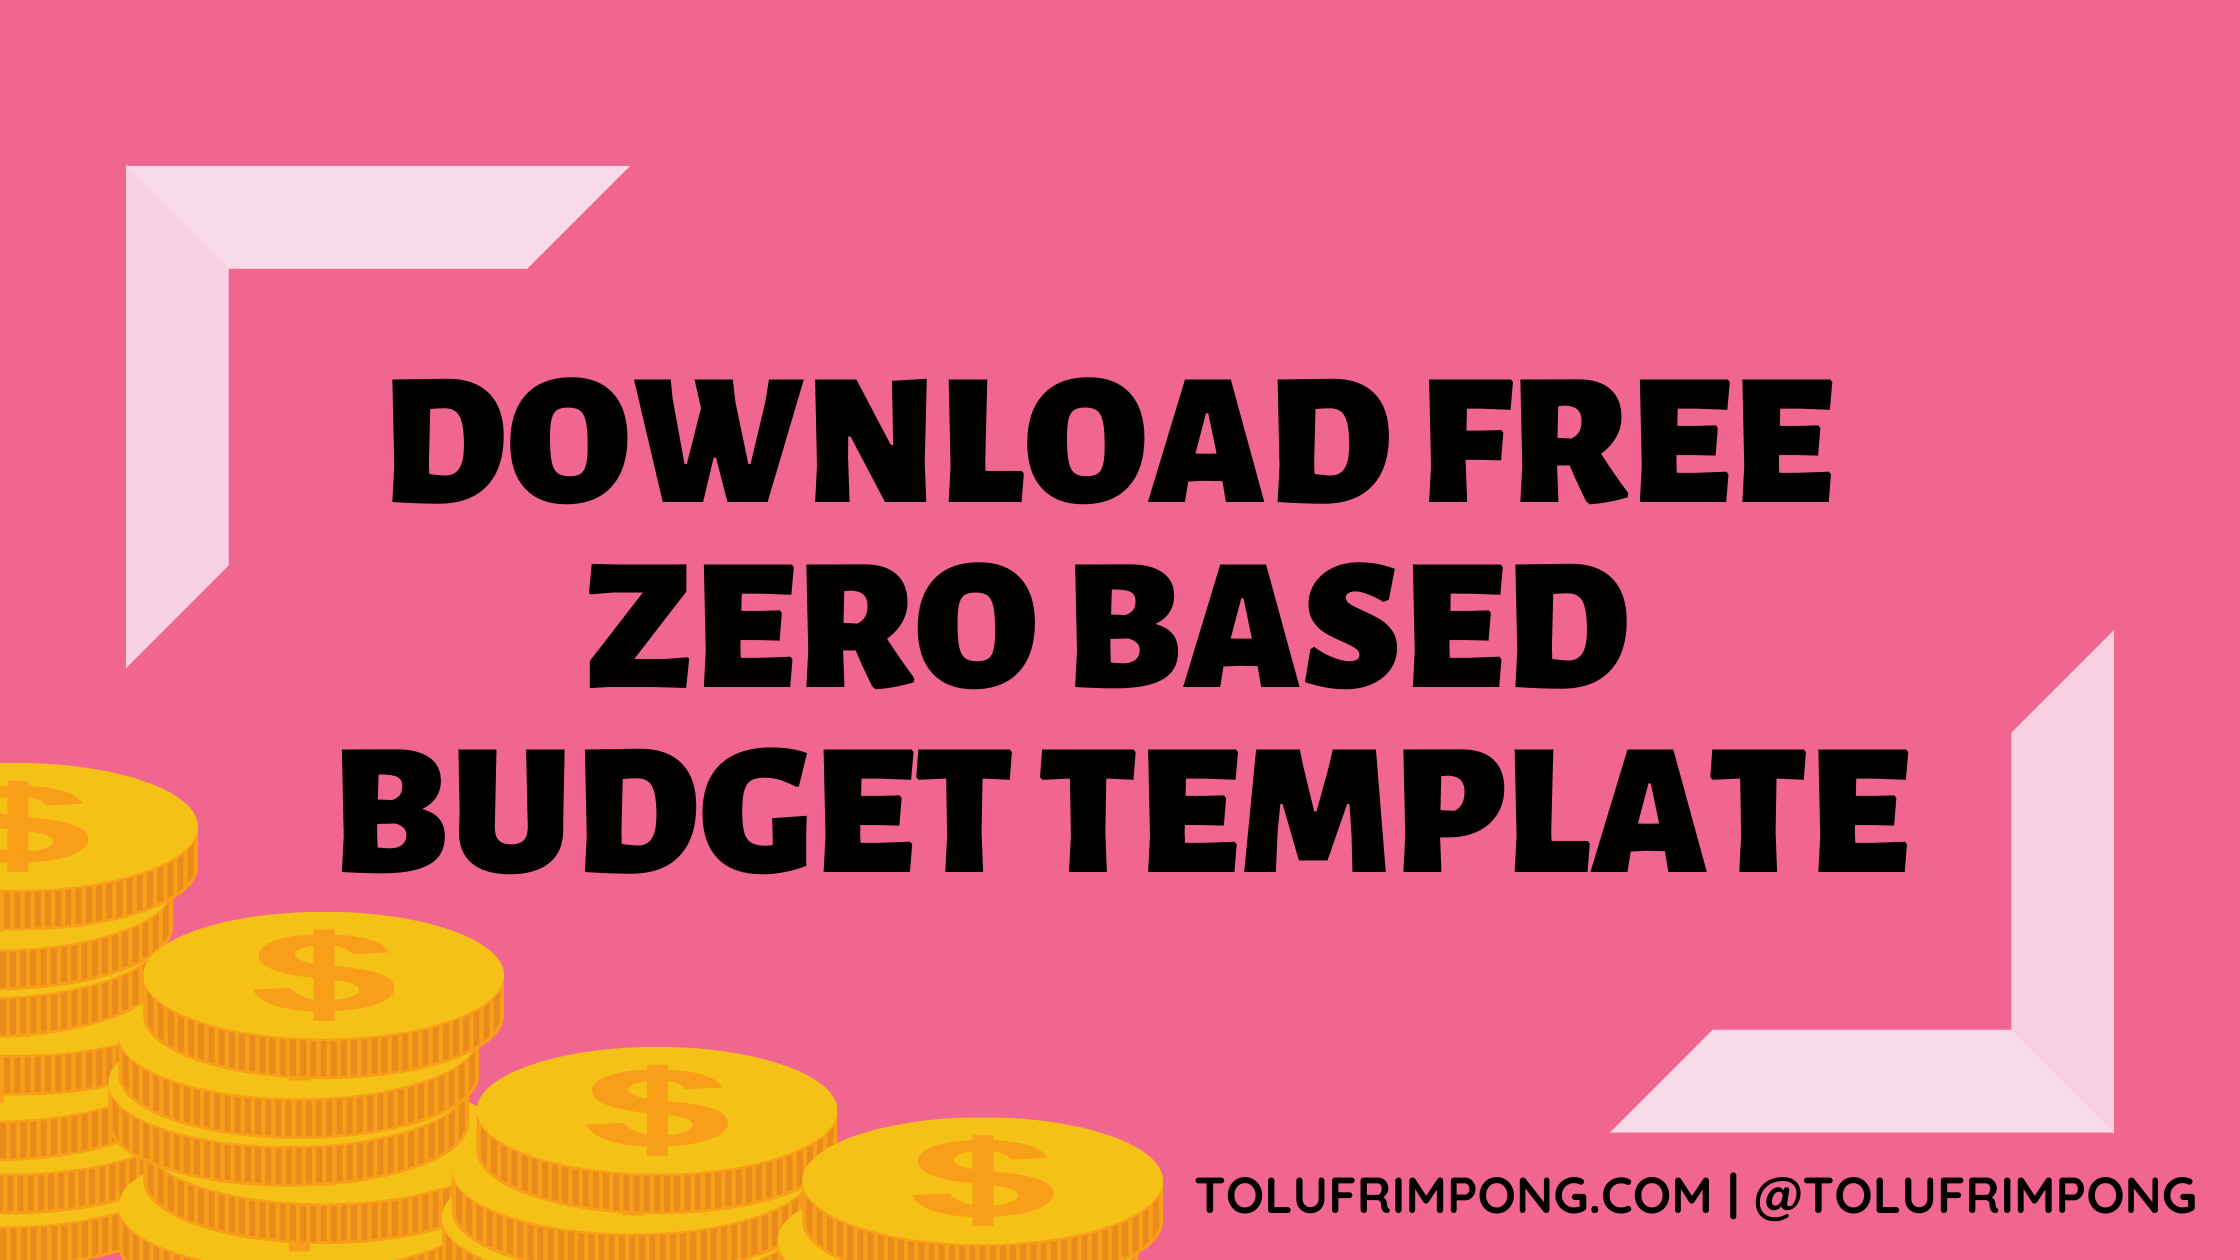 DOWNLOAD FREE ZERO BASED BUDGET TEMPLATE